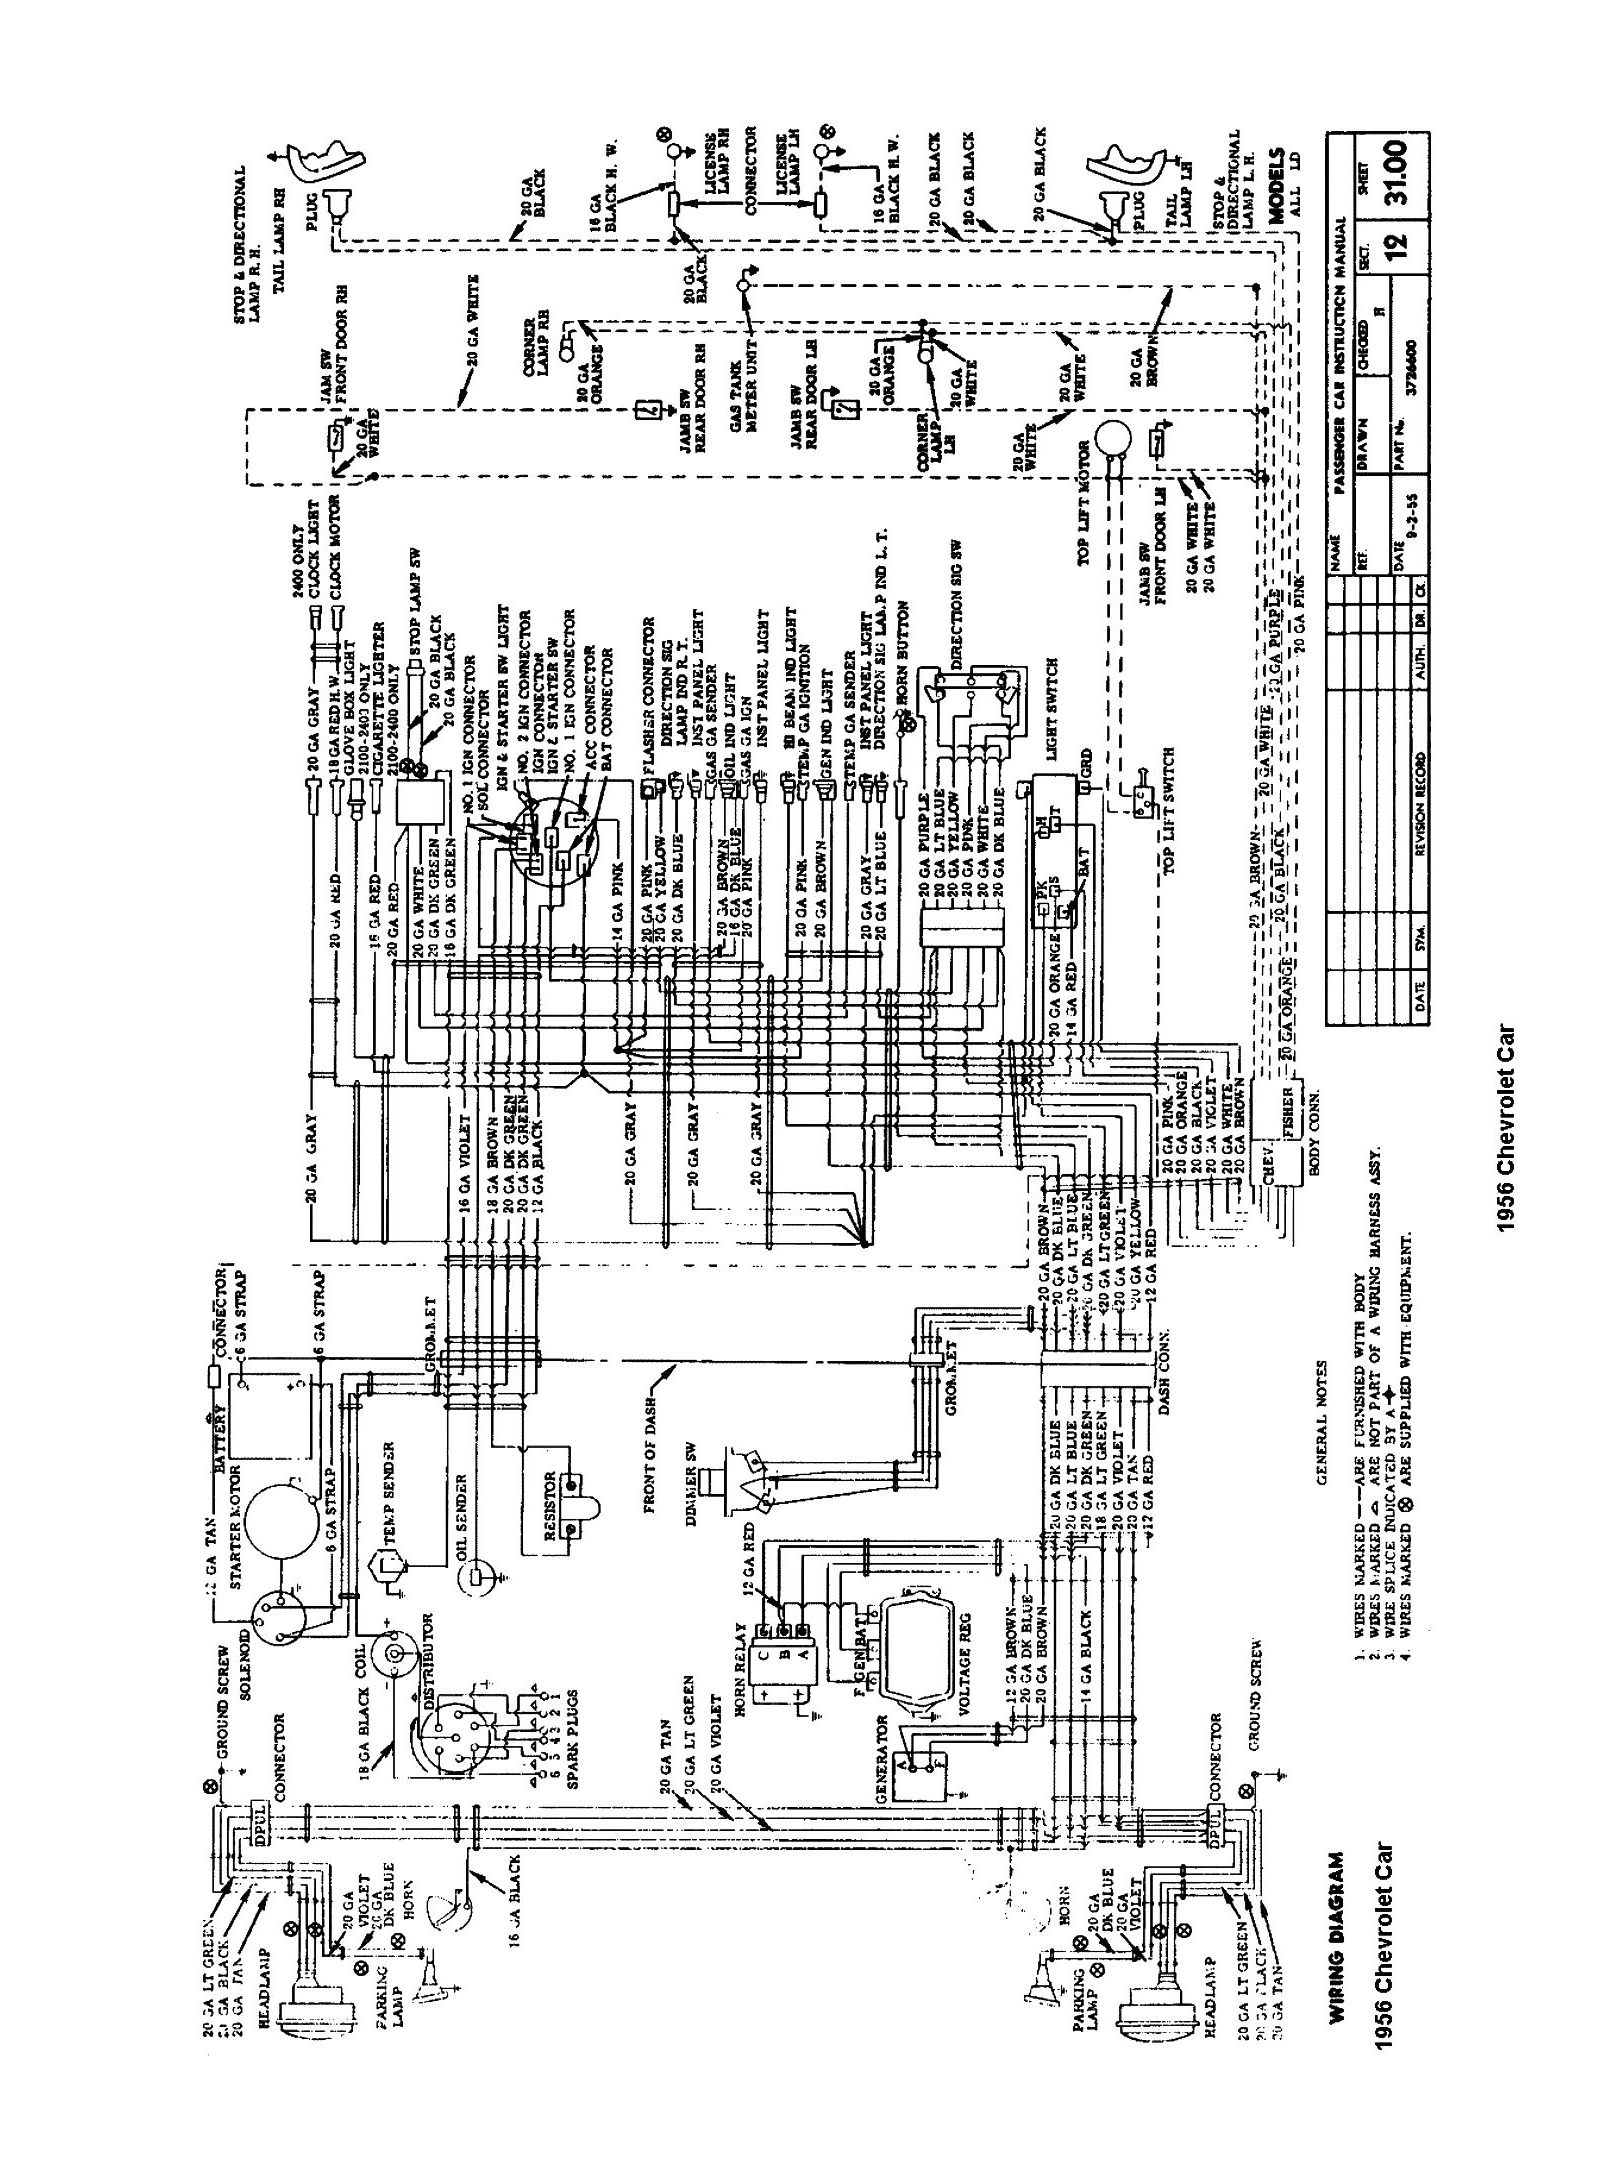 93 Chevy Silverado Wiring Diagram